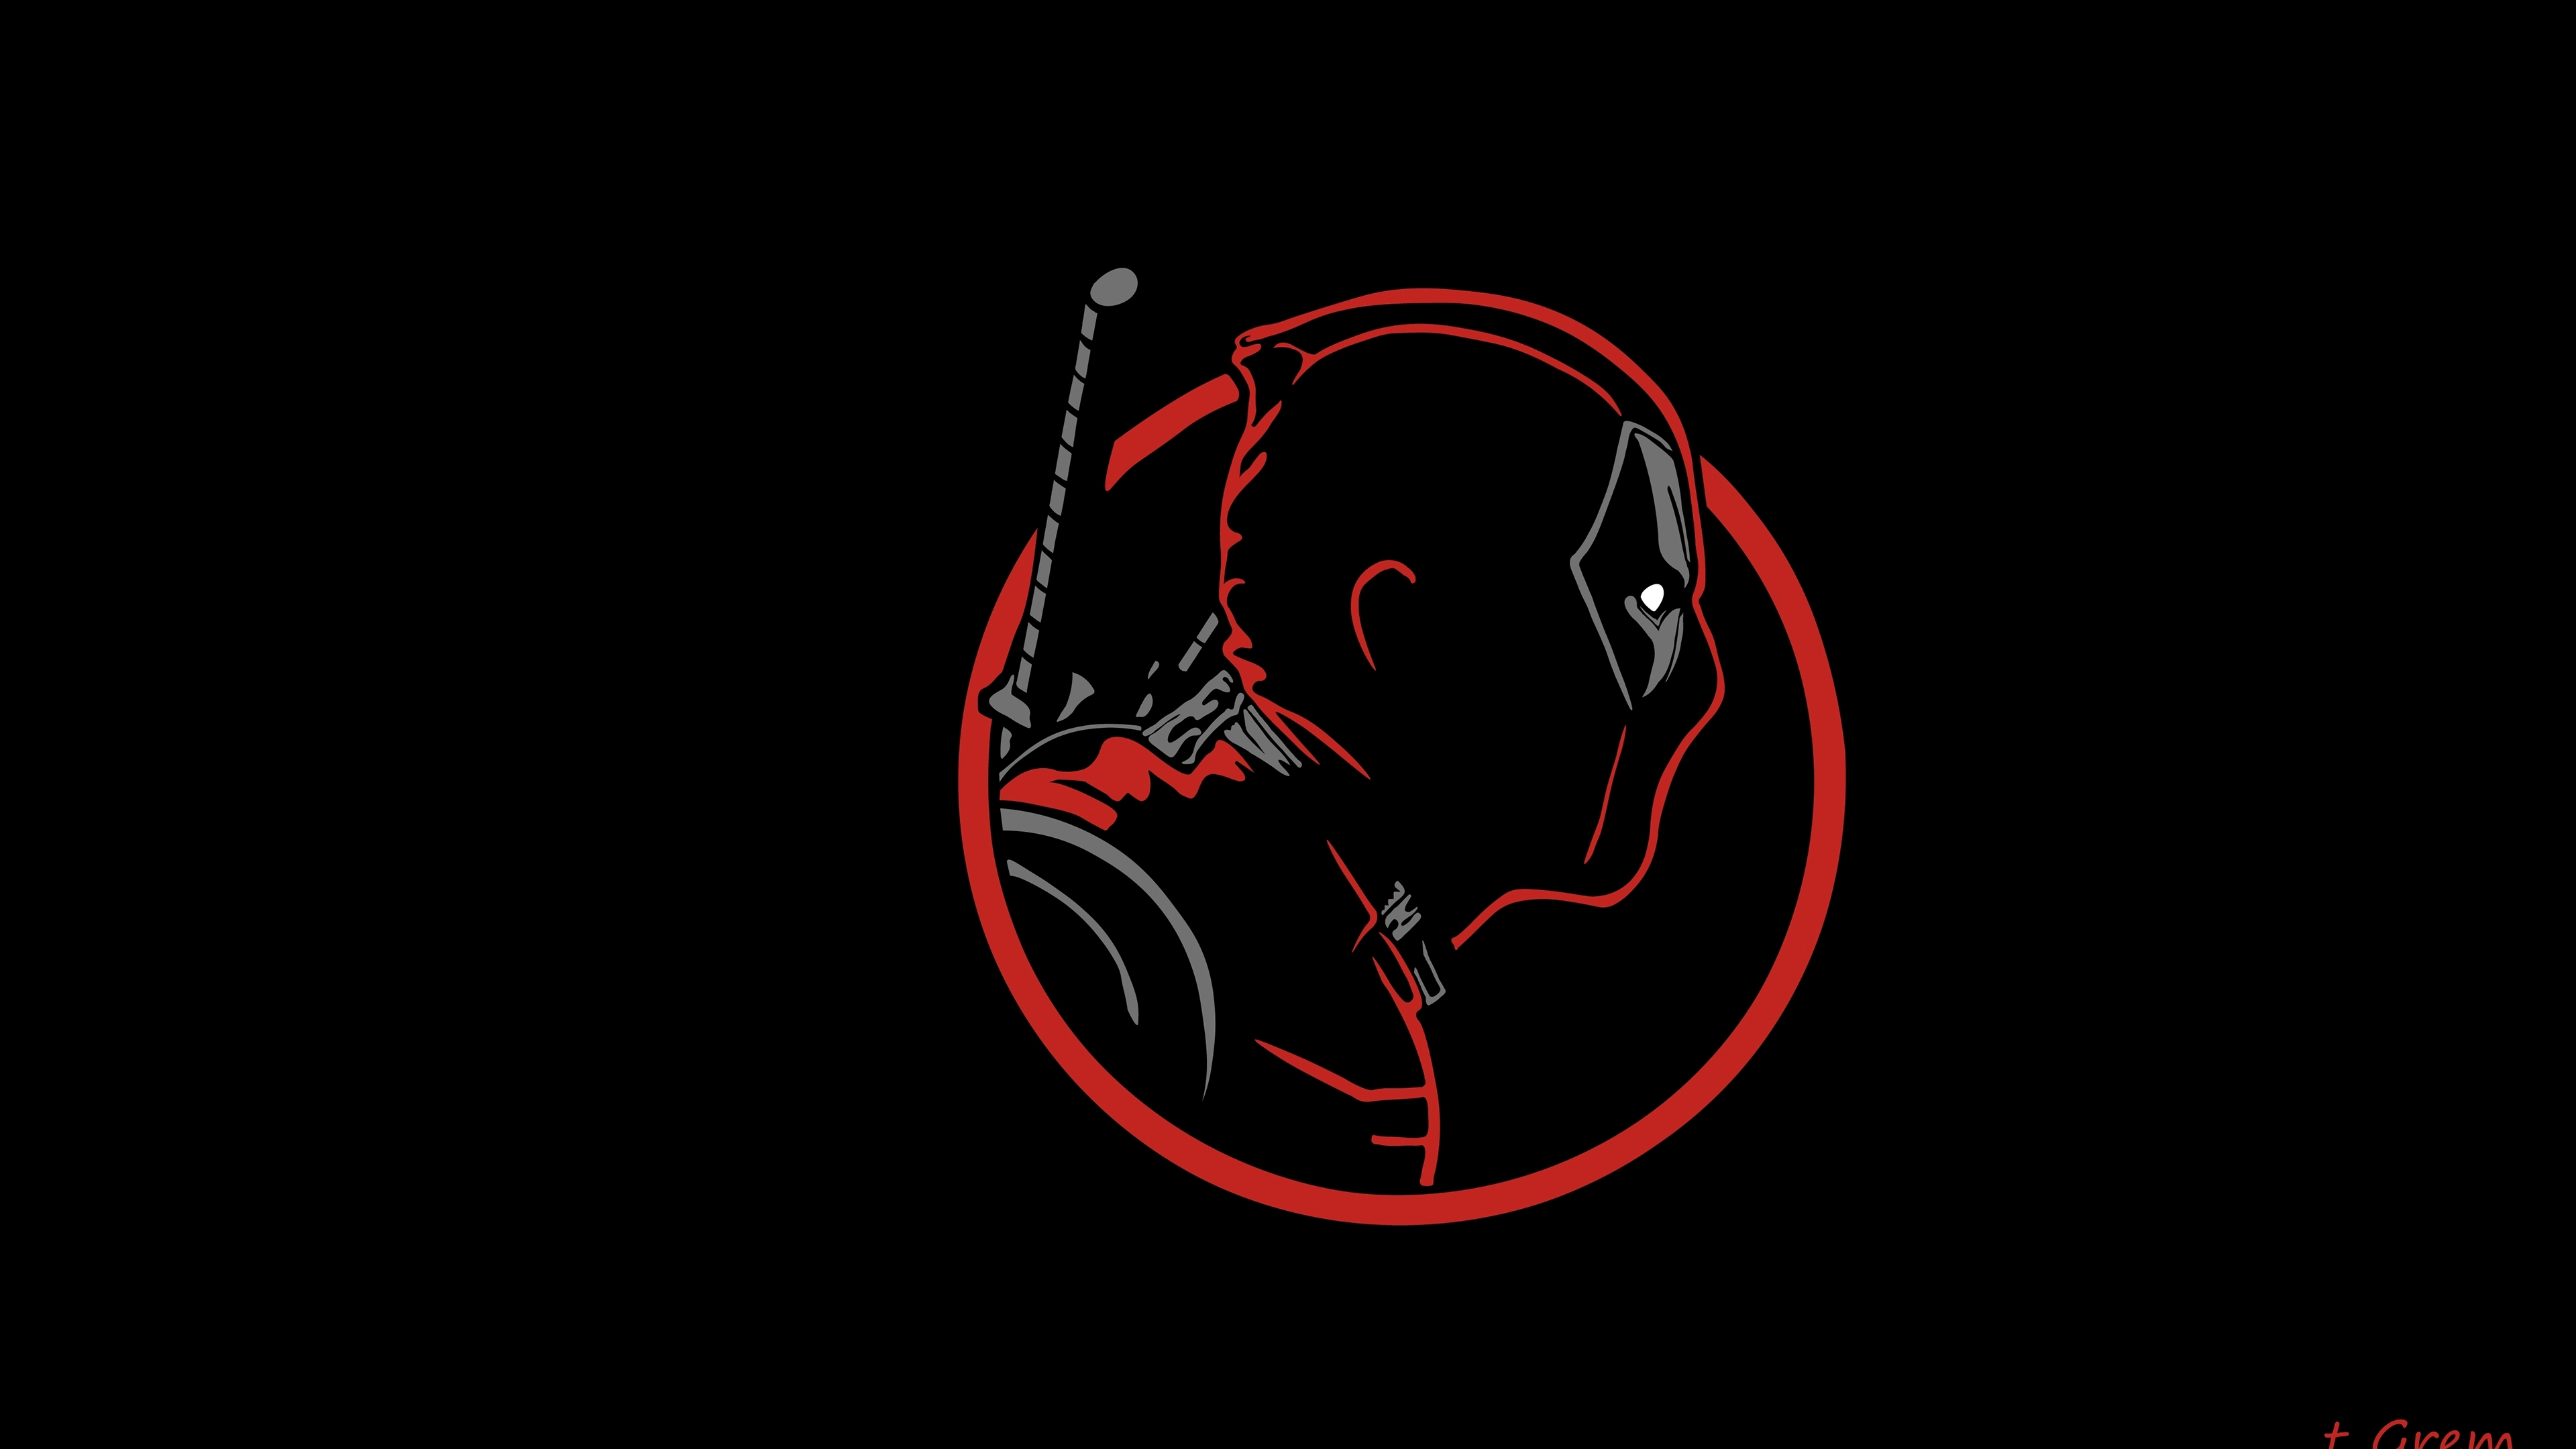 Wallpaper 4k Deadpool Minimal 4k 4k wallpapers artist wallpapers